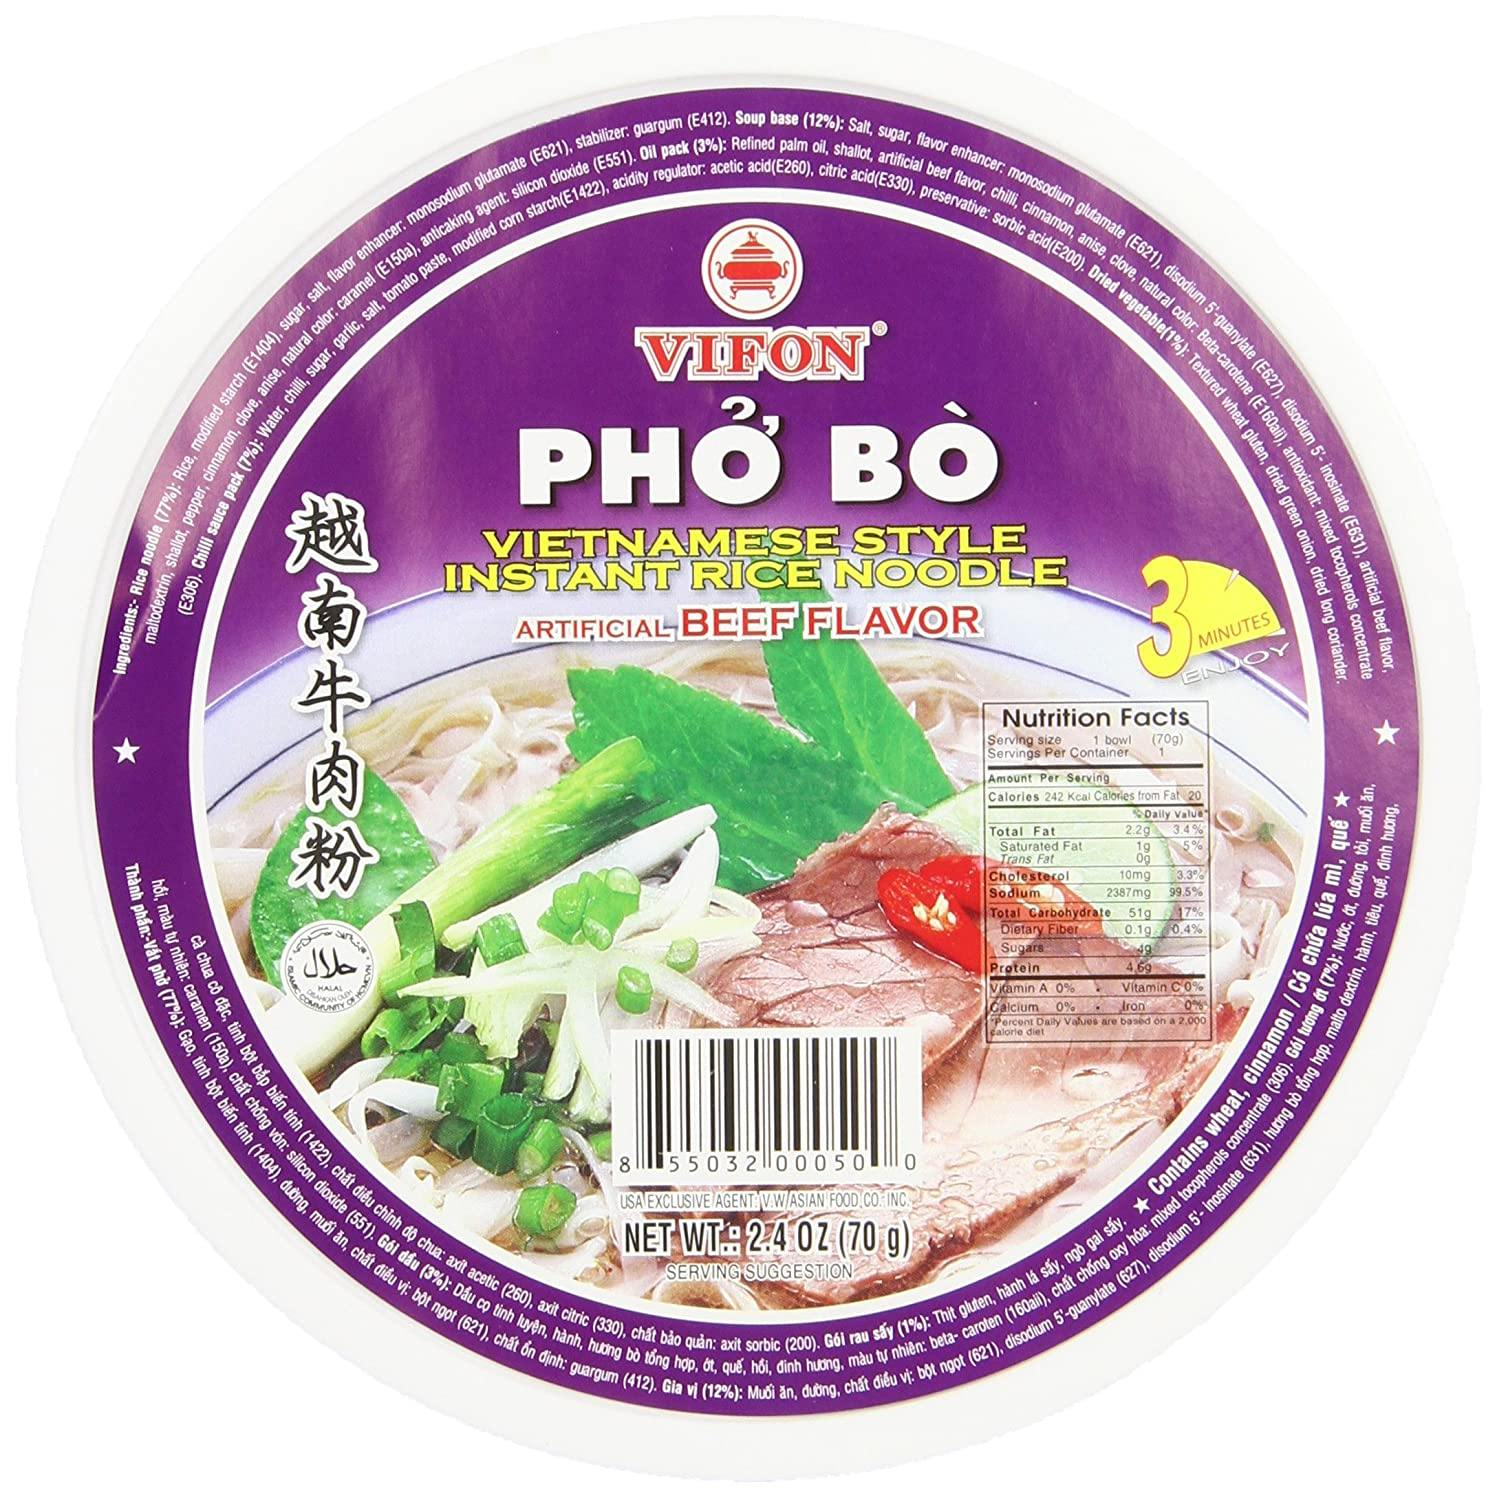 Vifon Cup Vietnamese Style Instant Rice Noodles Beef Flavour Pho (Pho Bo) 2.4 Oz (70 g)